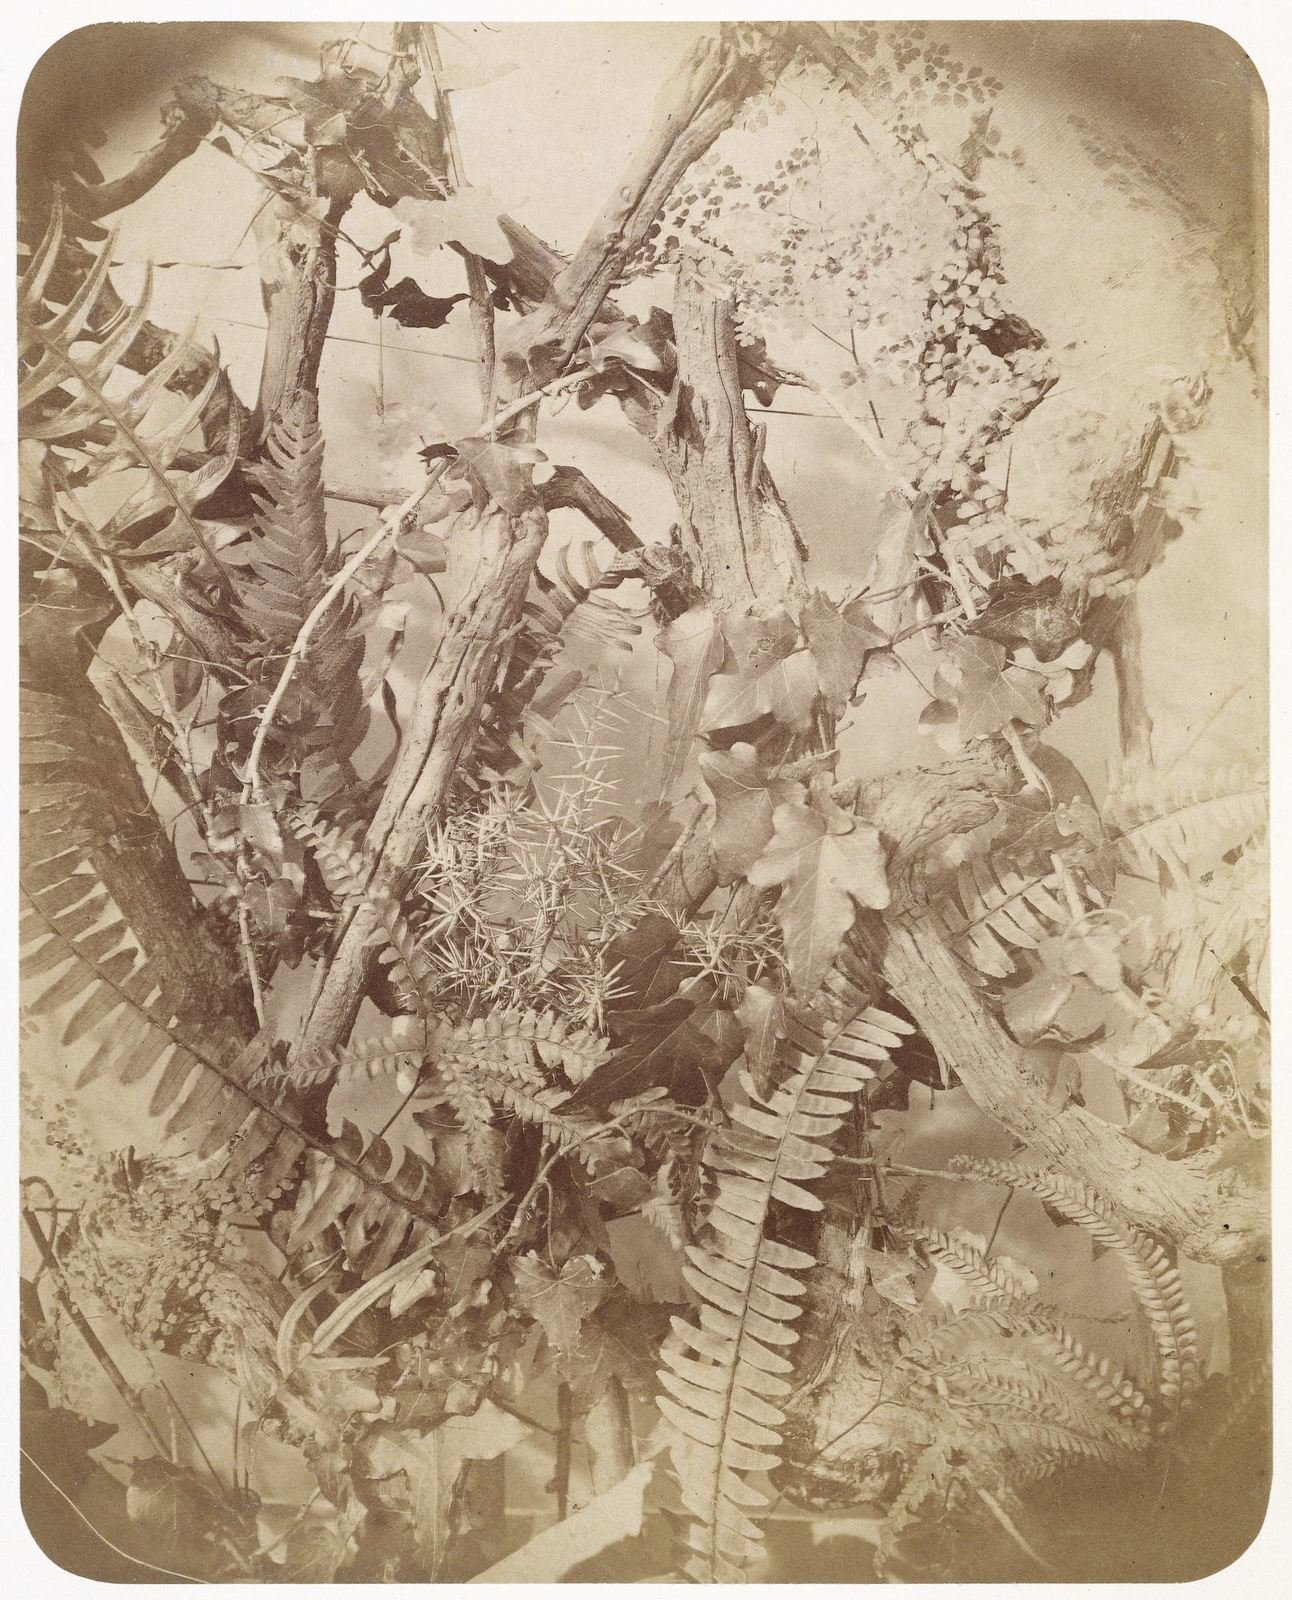 Still life with branches and ferns, 1857, Adolphe Braun, Rijksmuseum, Public Domain Mark